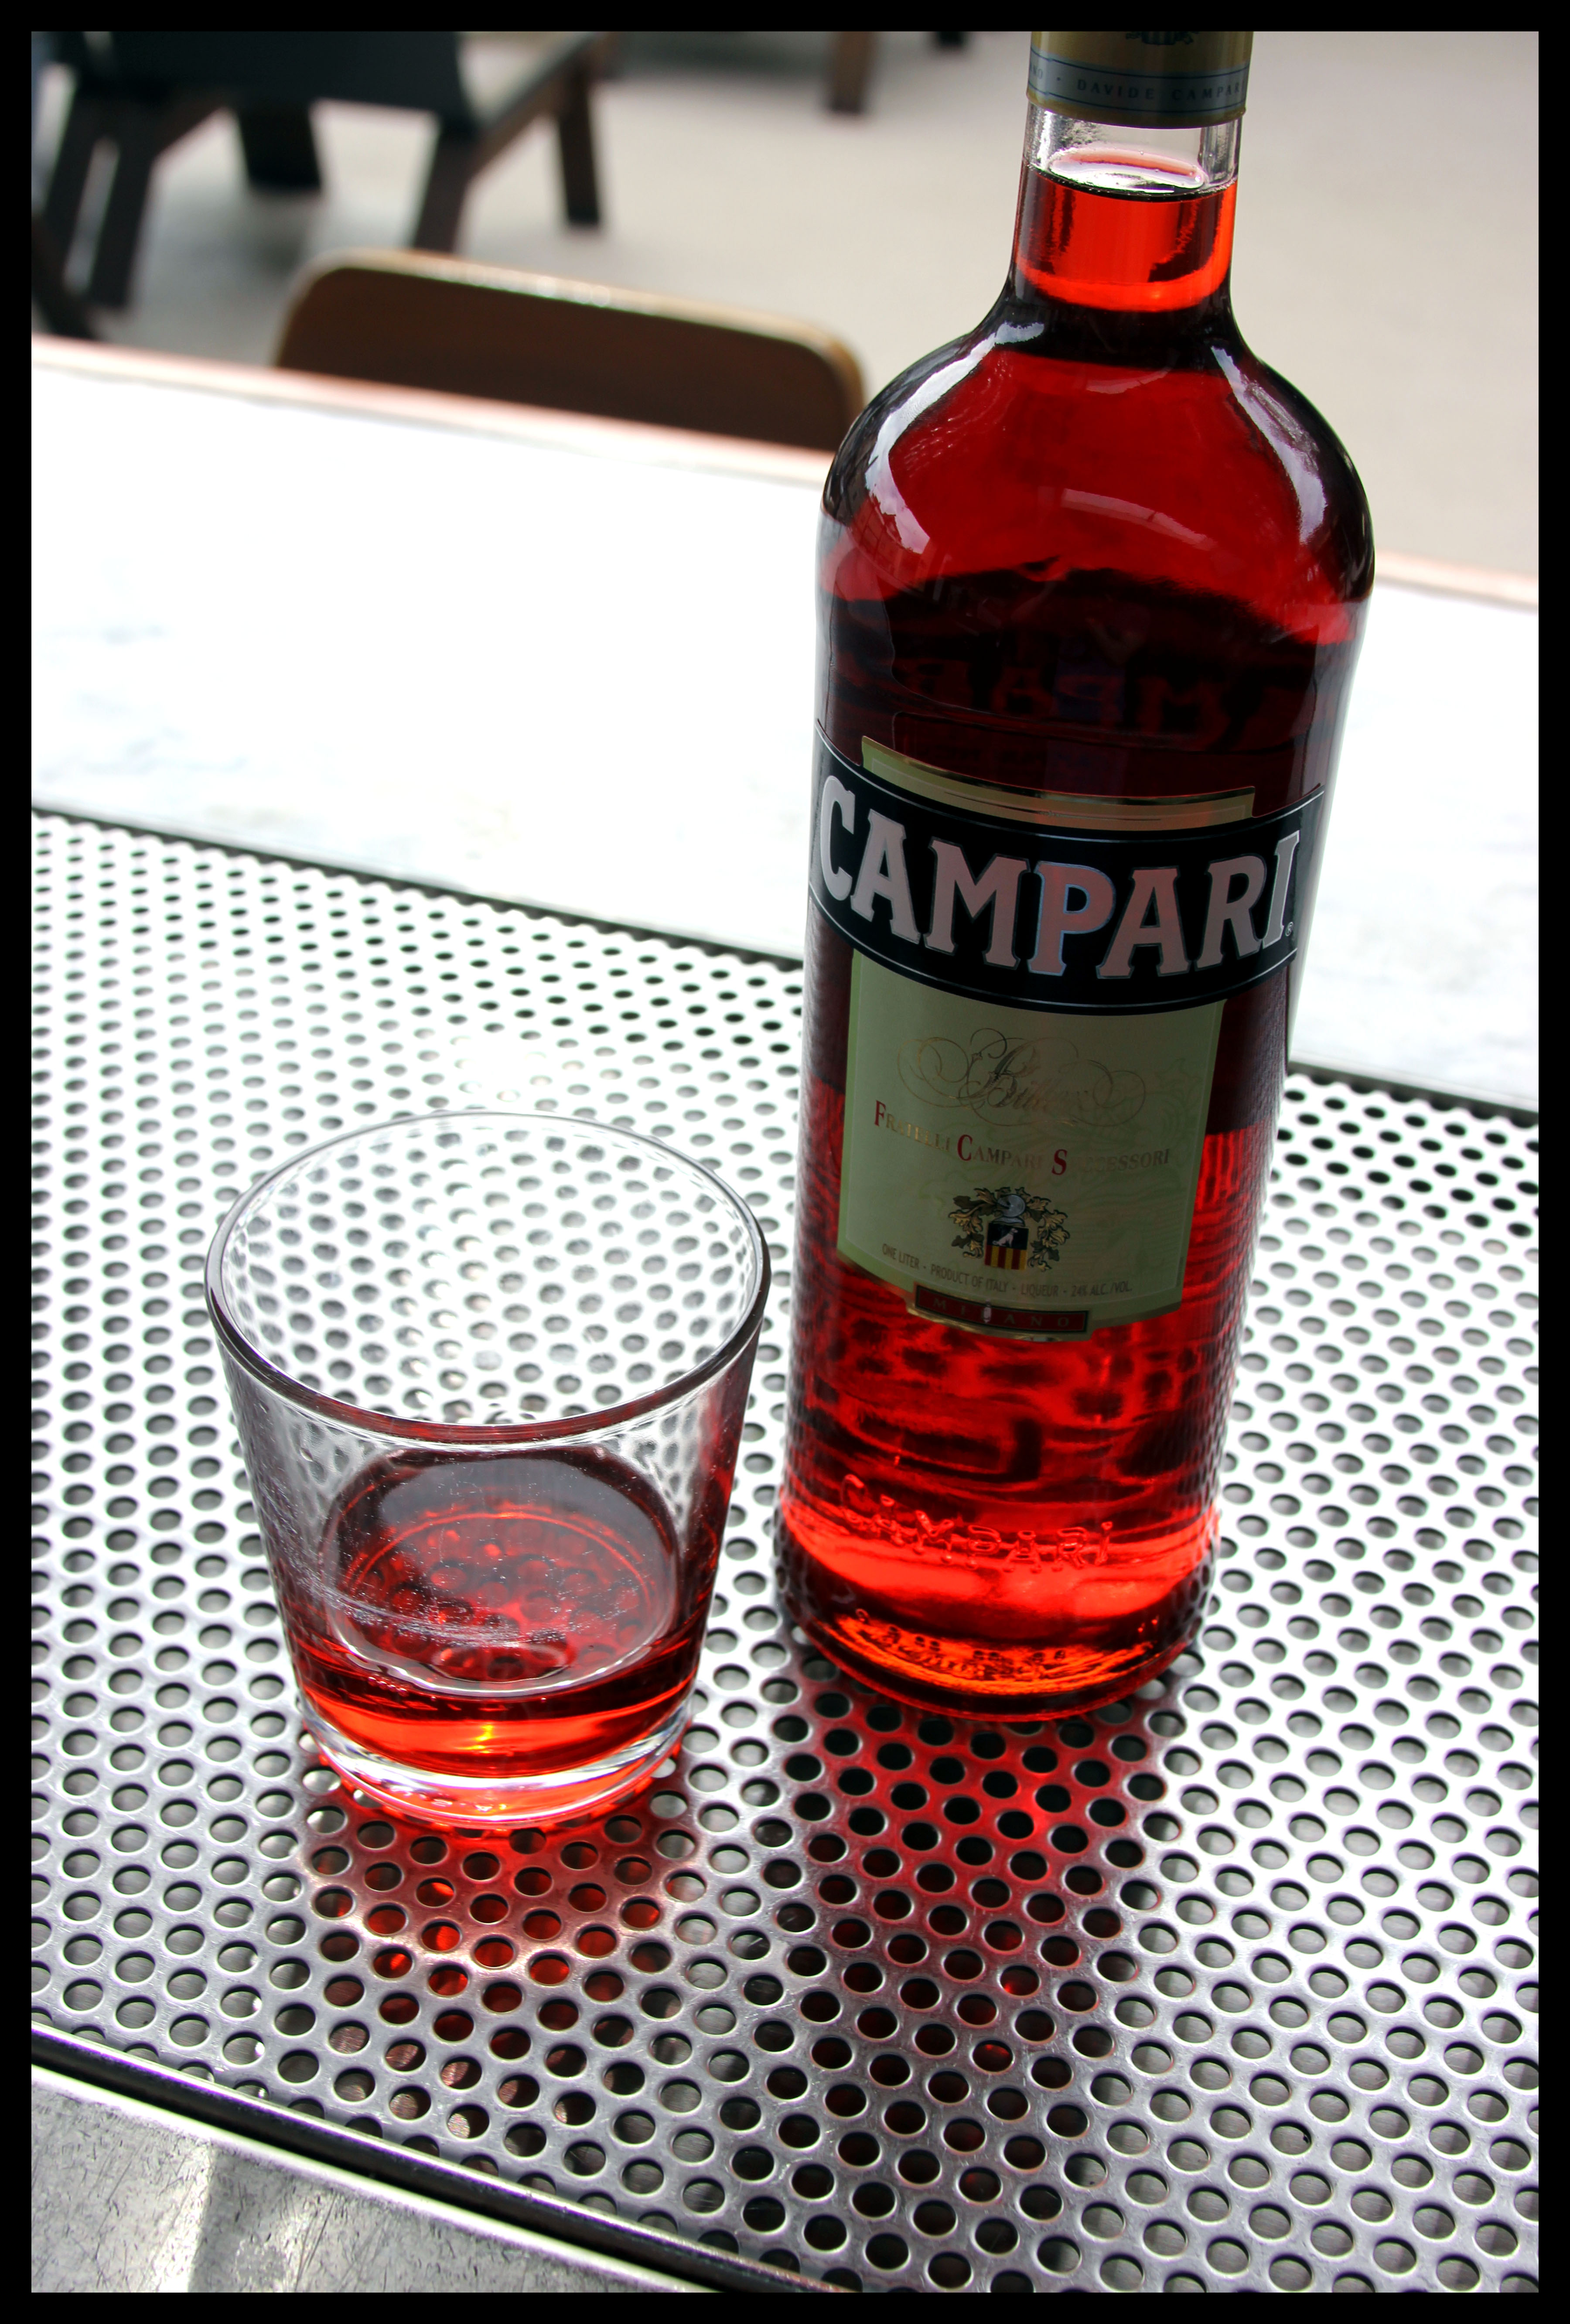 Campari: The Red Mistress | Drinks and Drinking